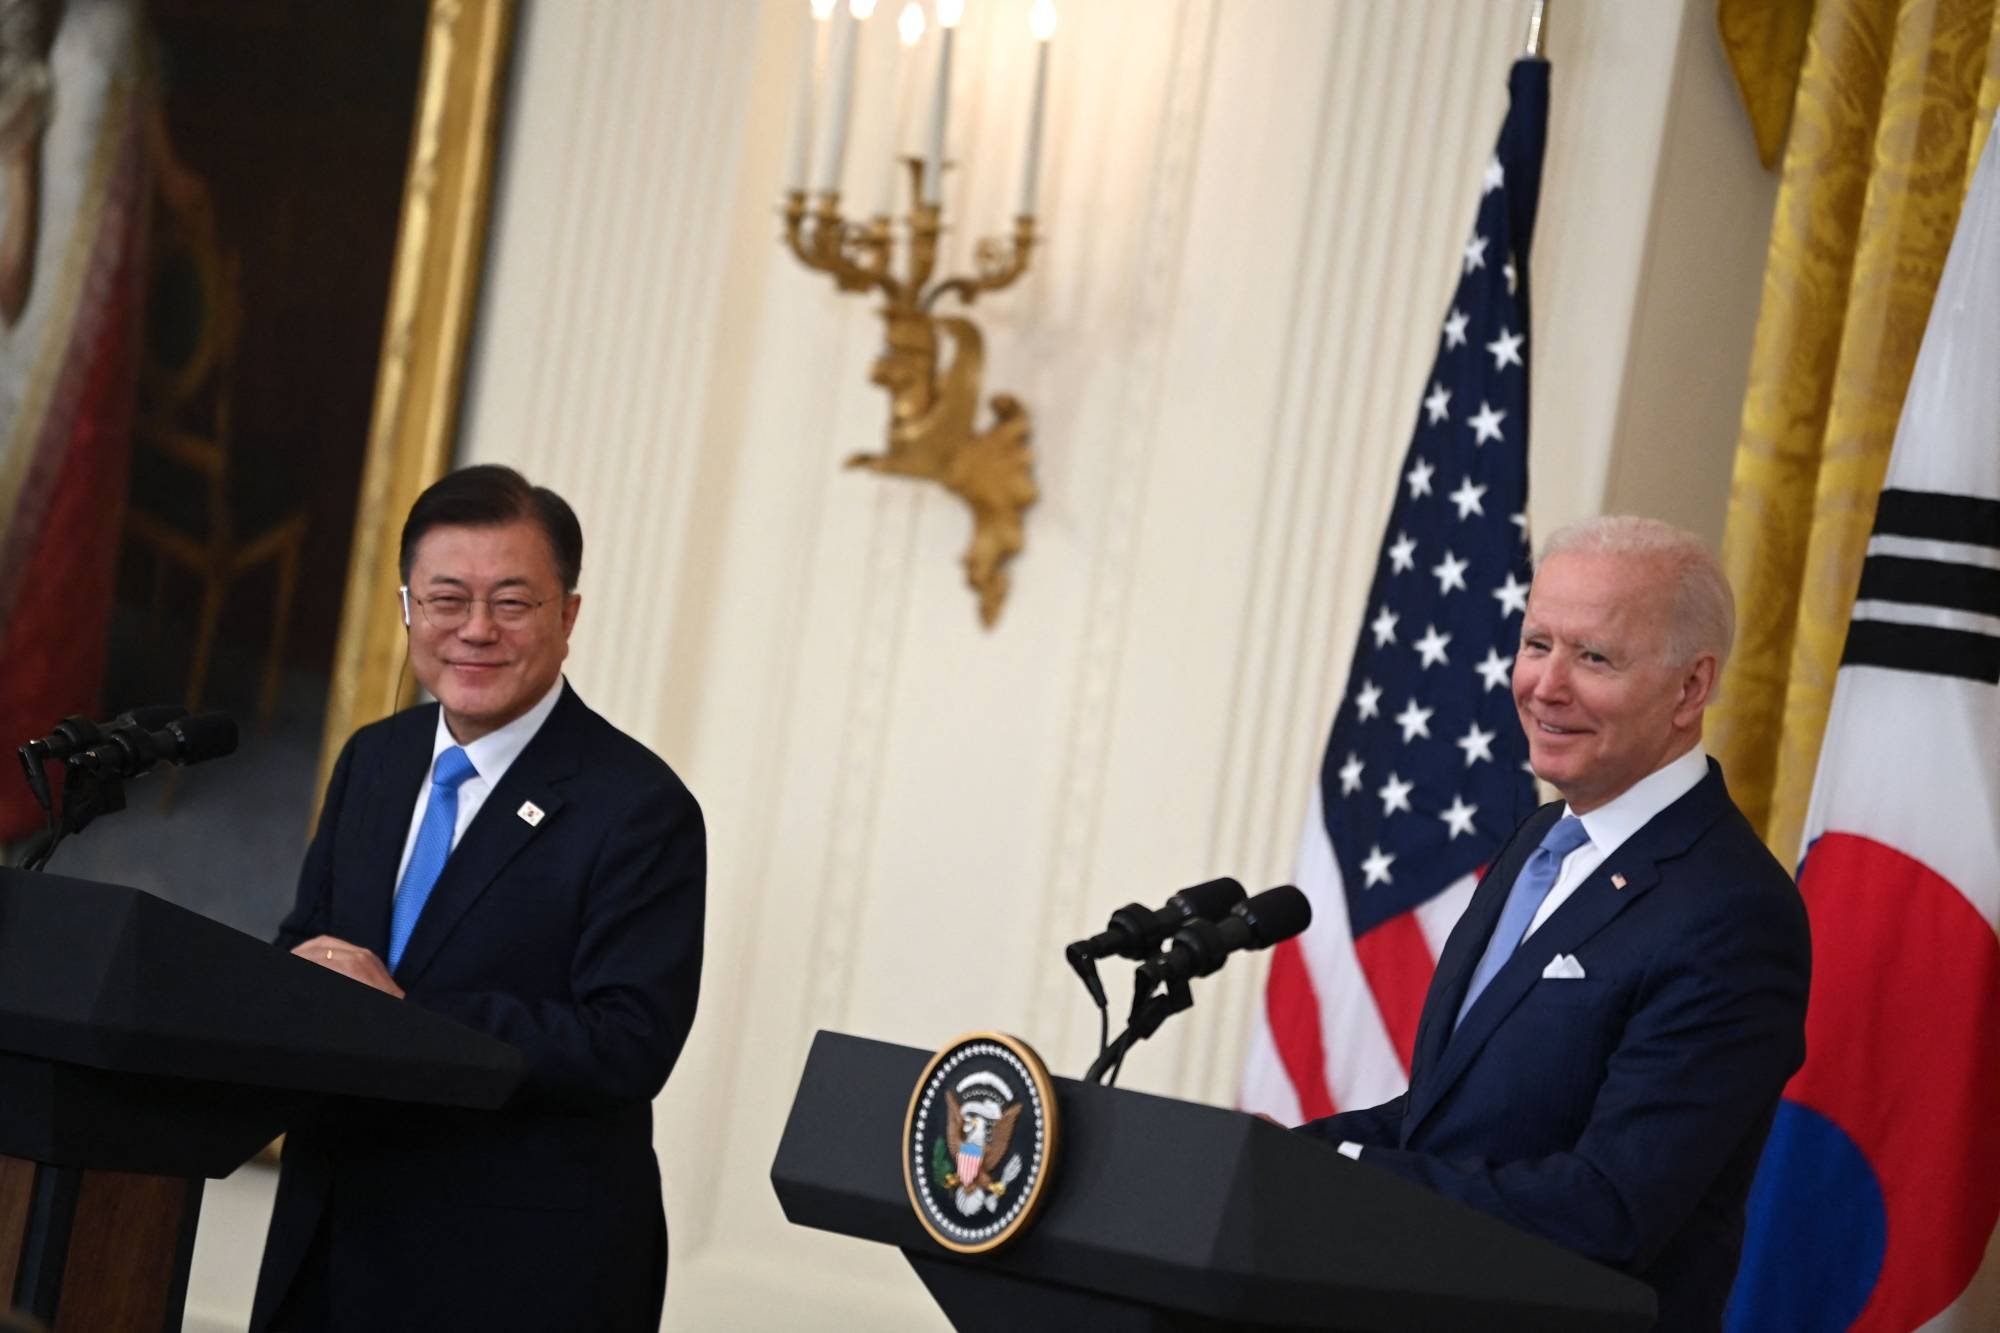 US President Joe Biden (right) and South Korean President Moon Jae-in participate in a press conference in the State Dining Room of the White House in Washington, DC on May 21, 2021